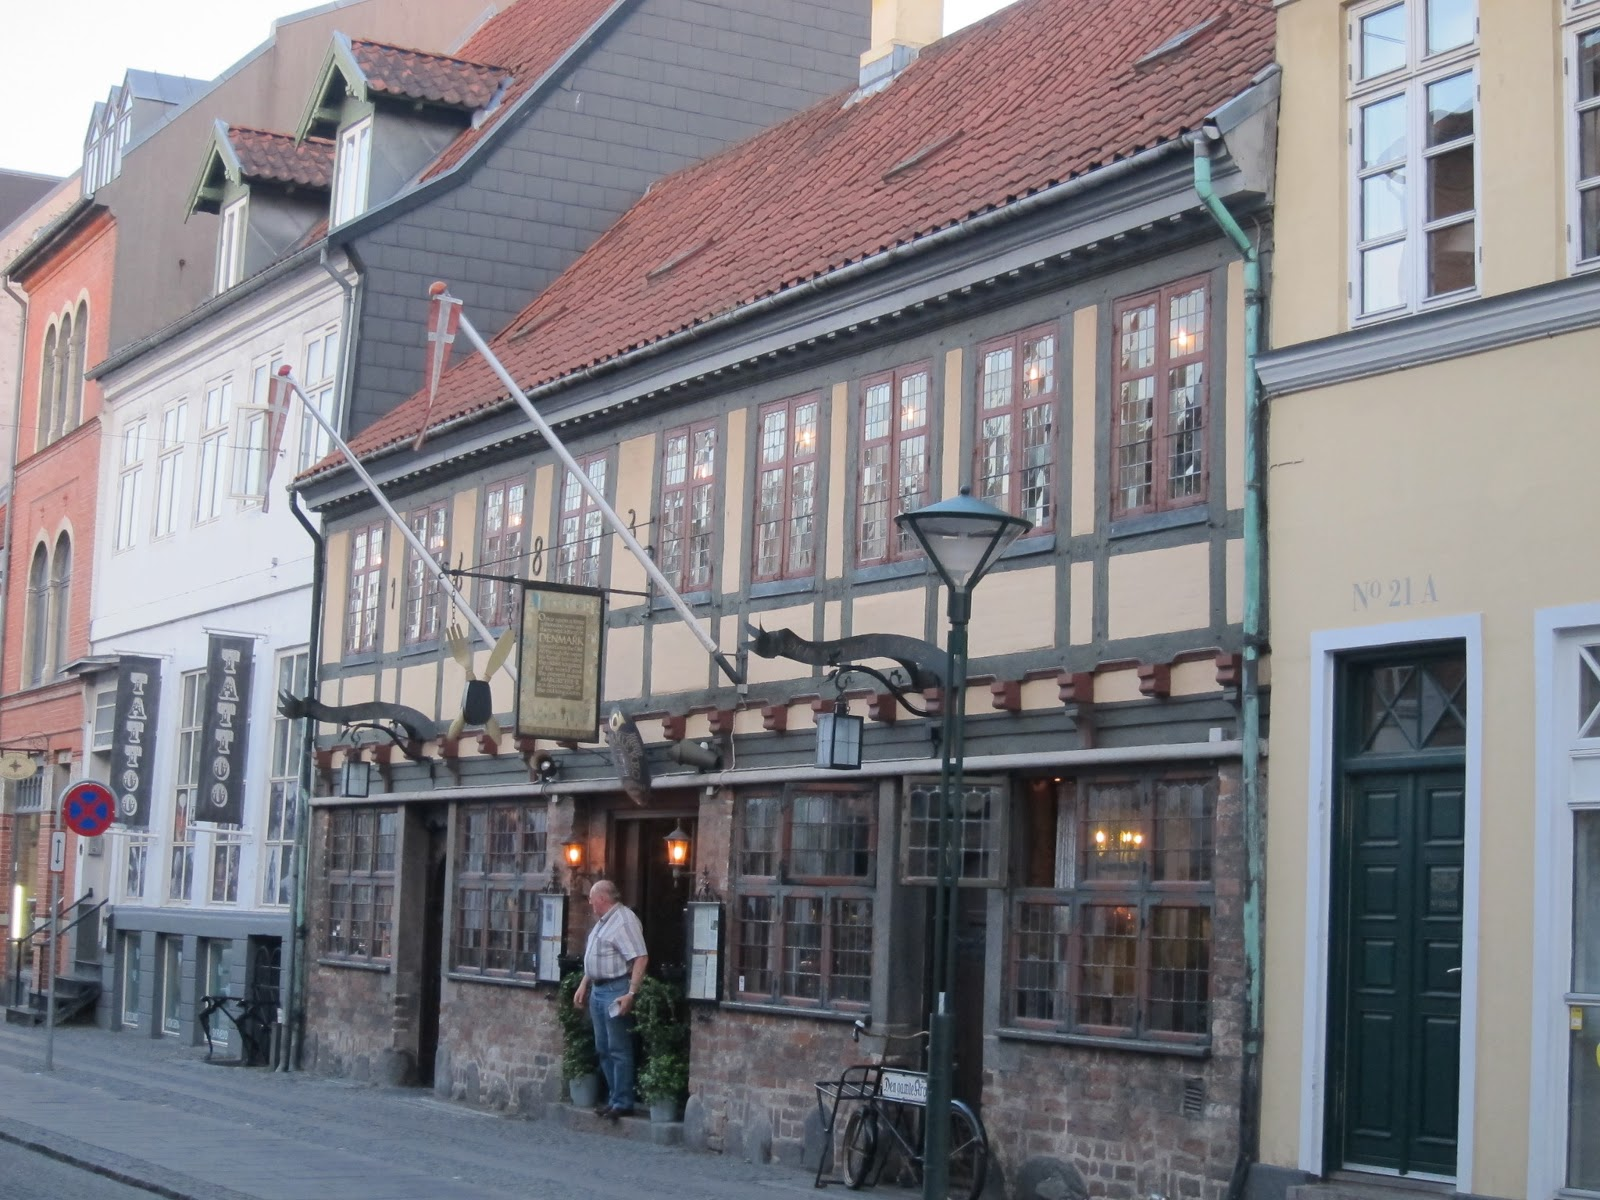 den gamle by i Odense kino Aabenraa